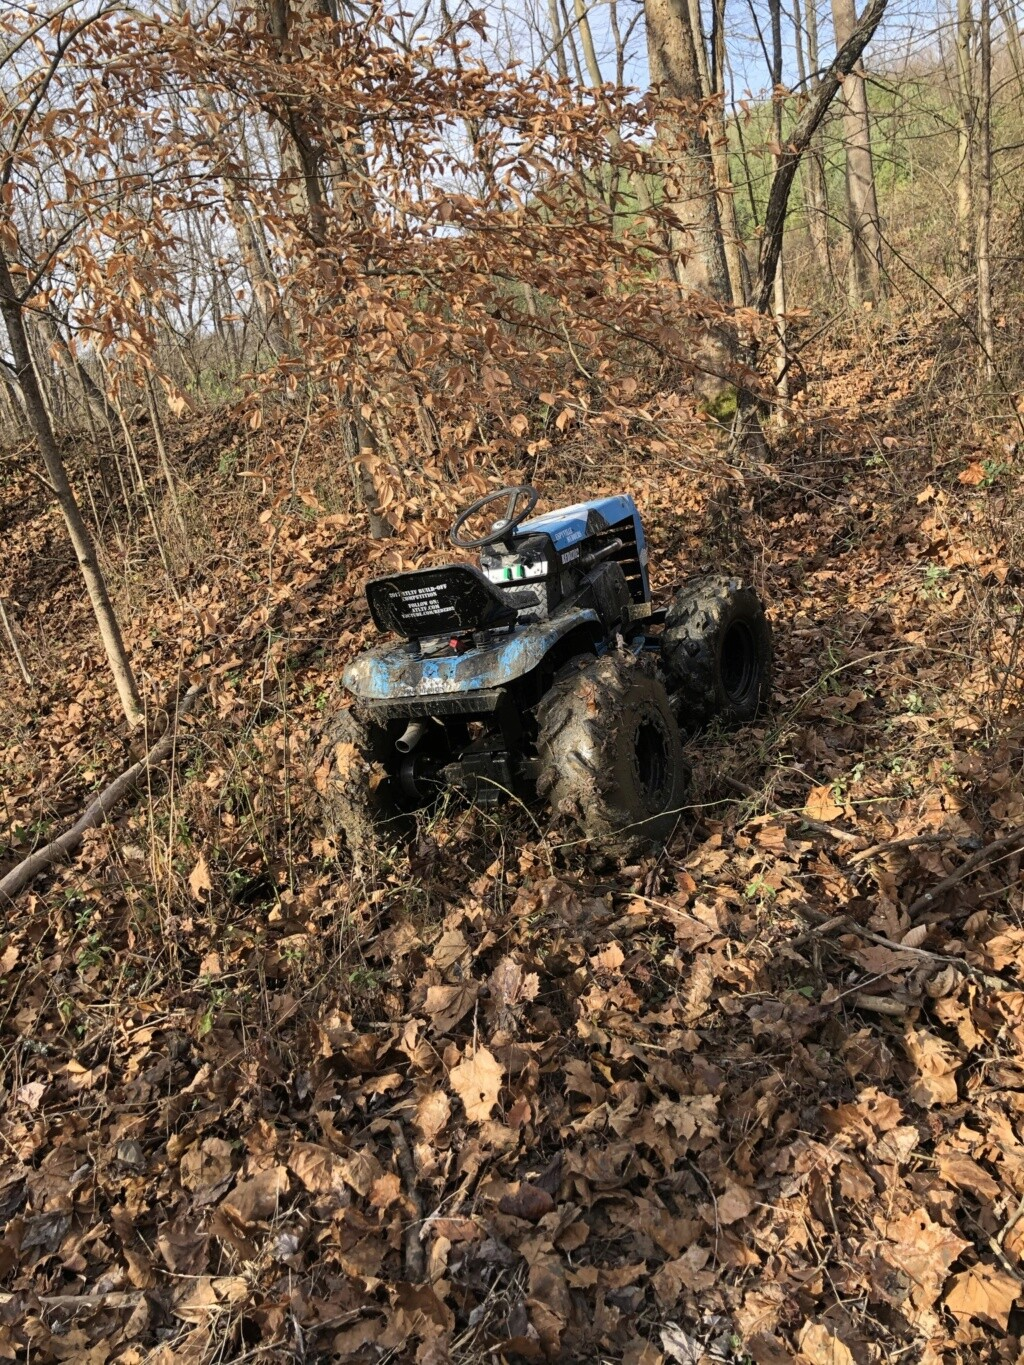 Off Road Pictures [PICTURES ONLY, NO TEXT POSTS] - Page 6 Fdbc0e10